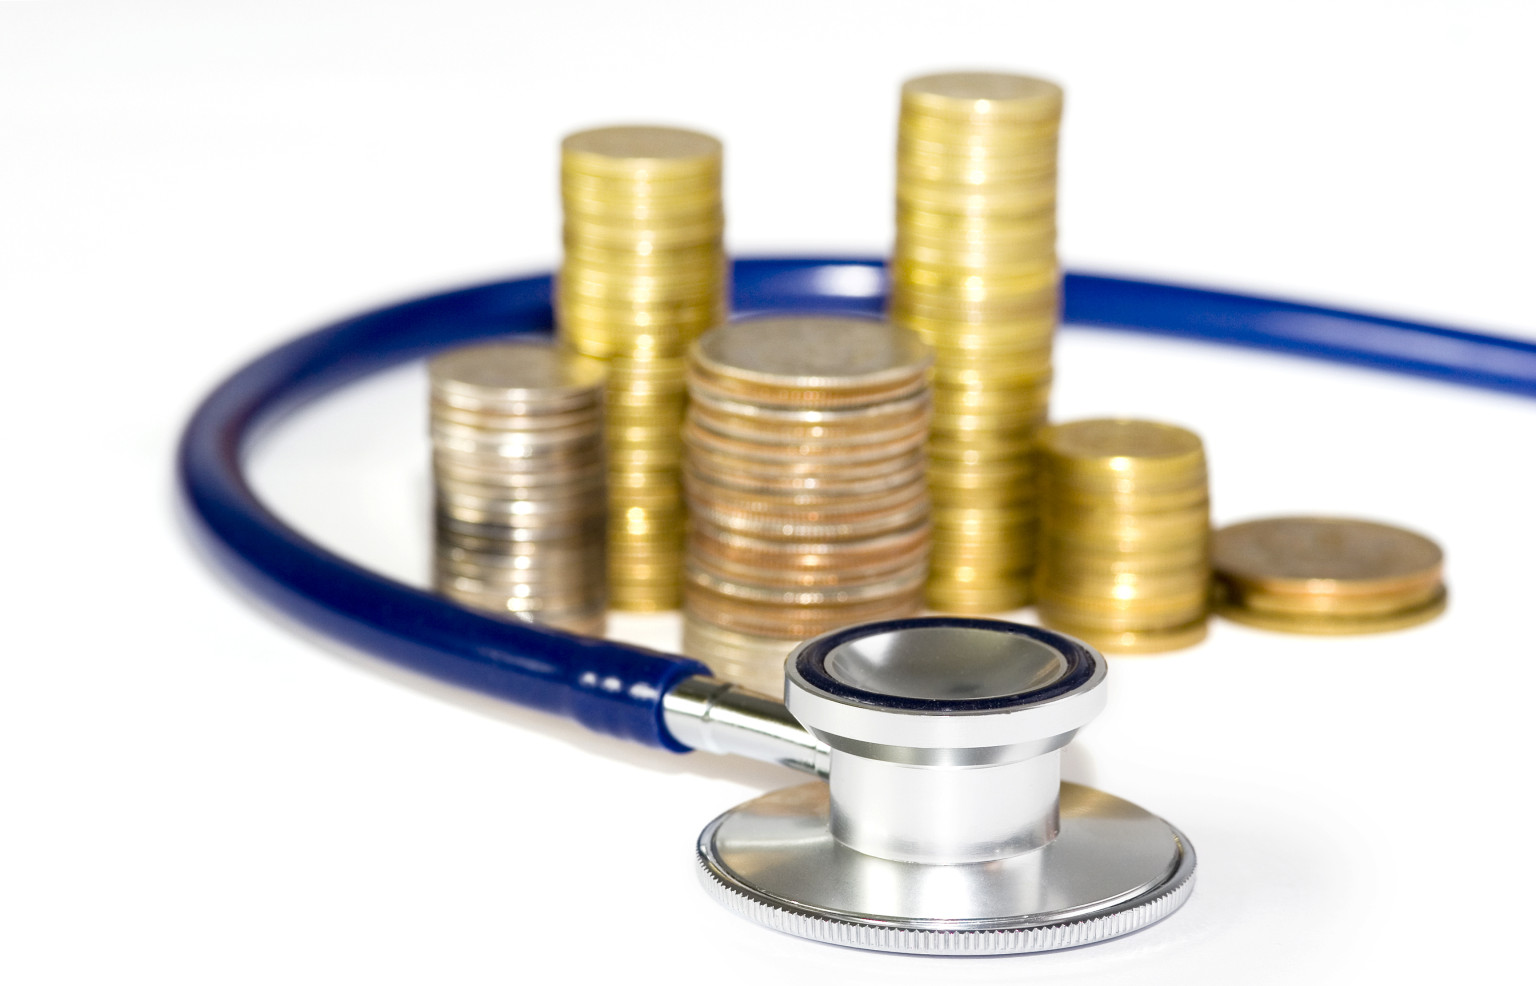 New Health Plans Expose the Insured to More Risk